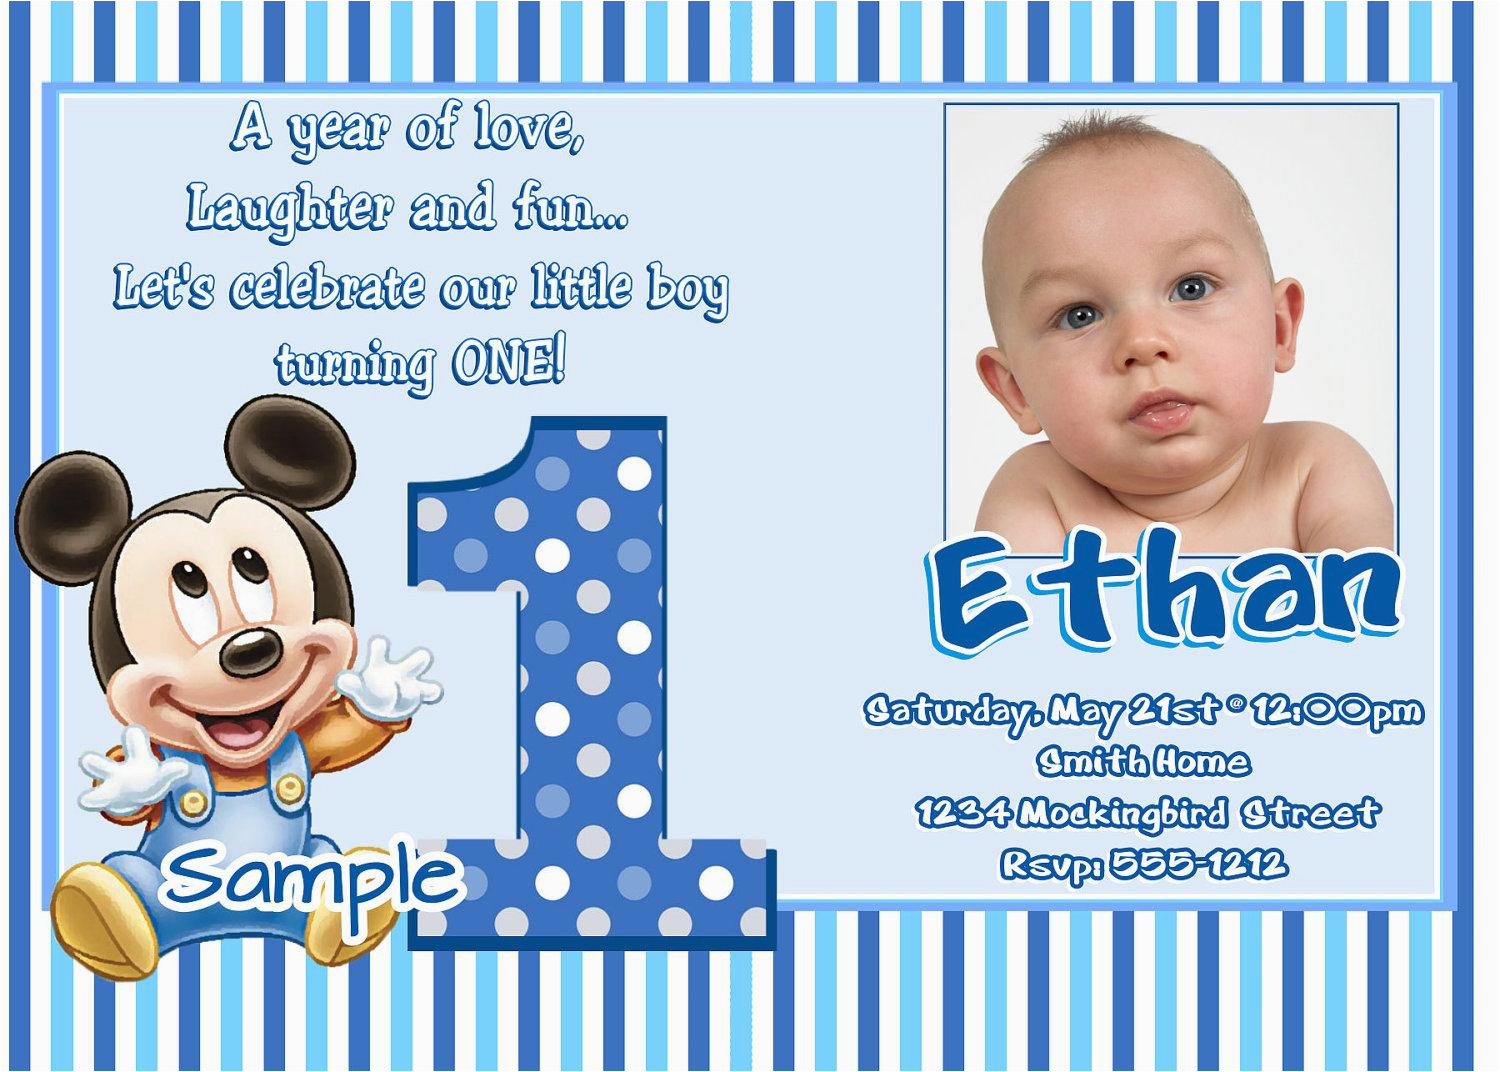 One Year Old Birthday Invitation Wording Librarry